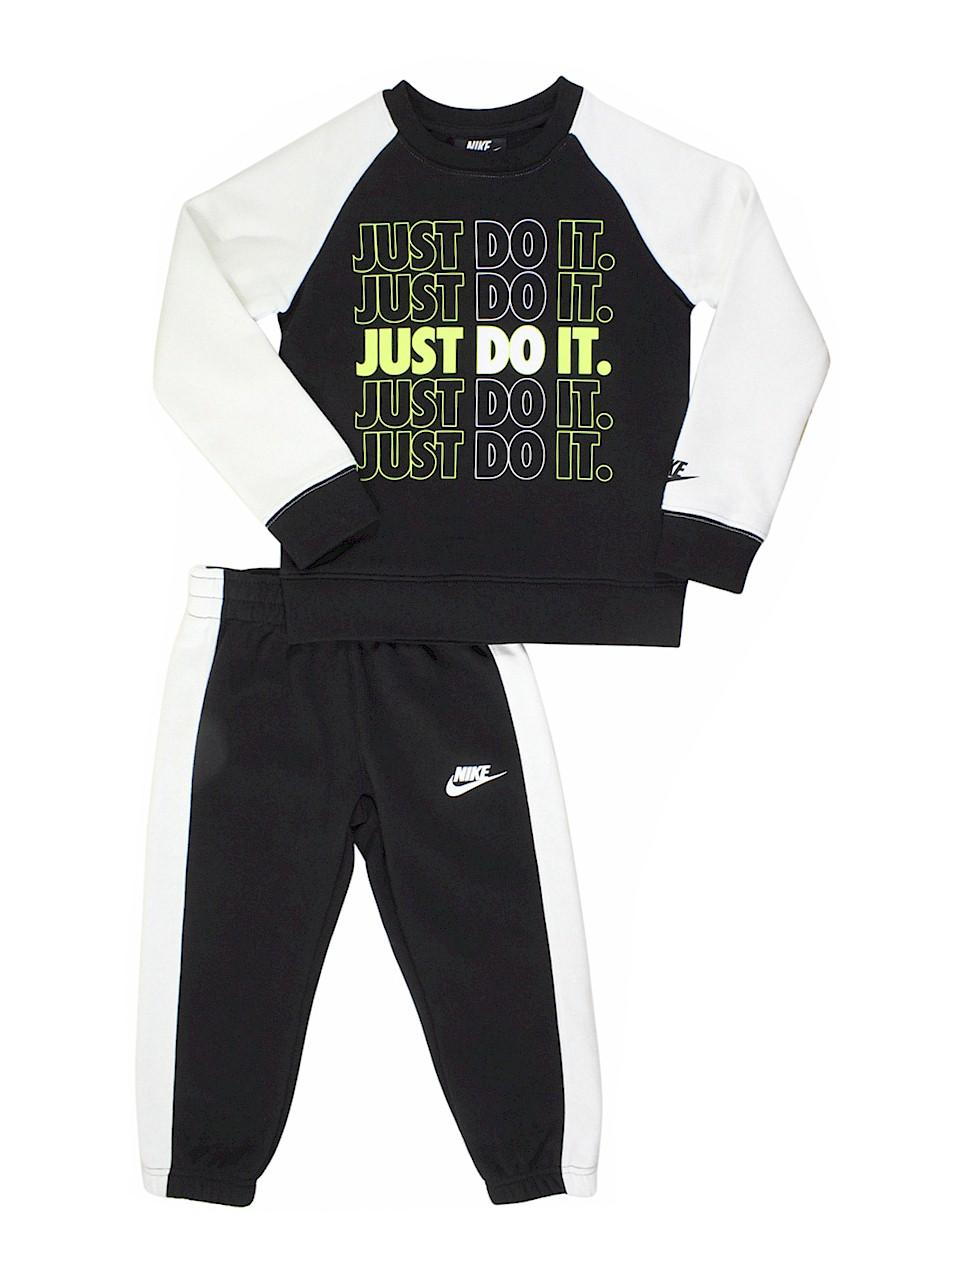 Nike Little Boys 2-Piece Outfit Set Gray